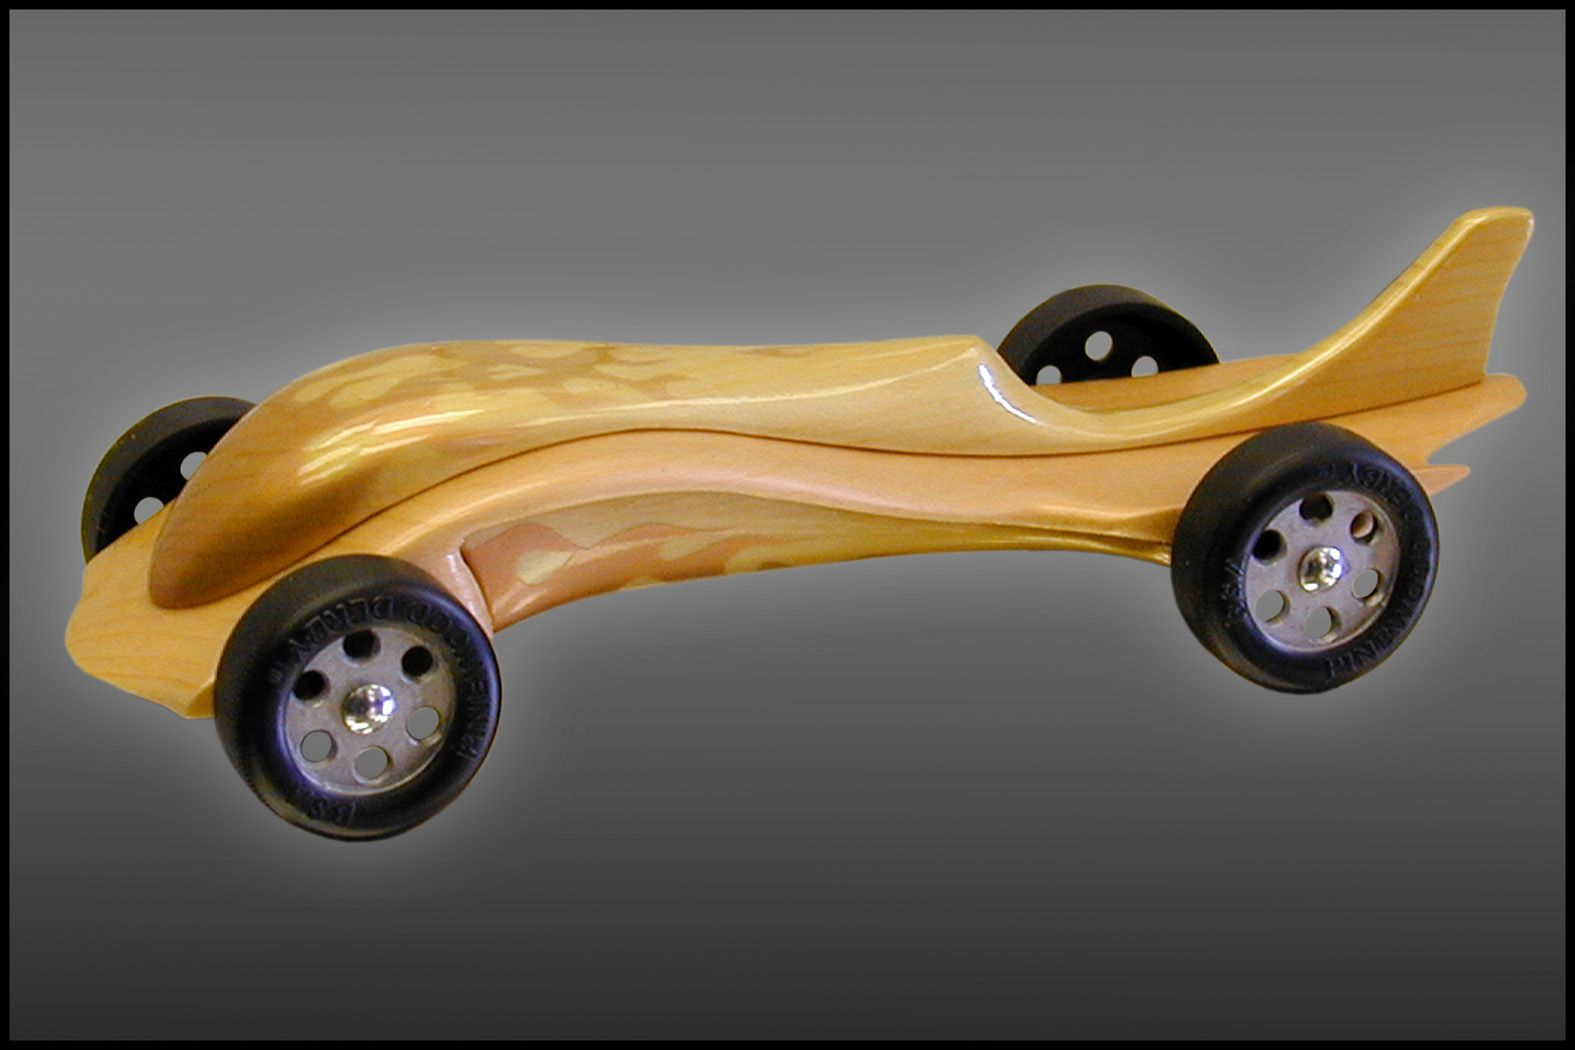 pinewood derby car dads version of a pinewood derby car - Pinewood Derby Car Design Ideas